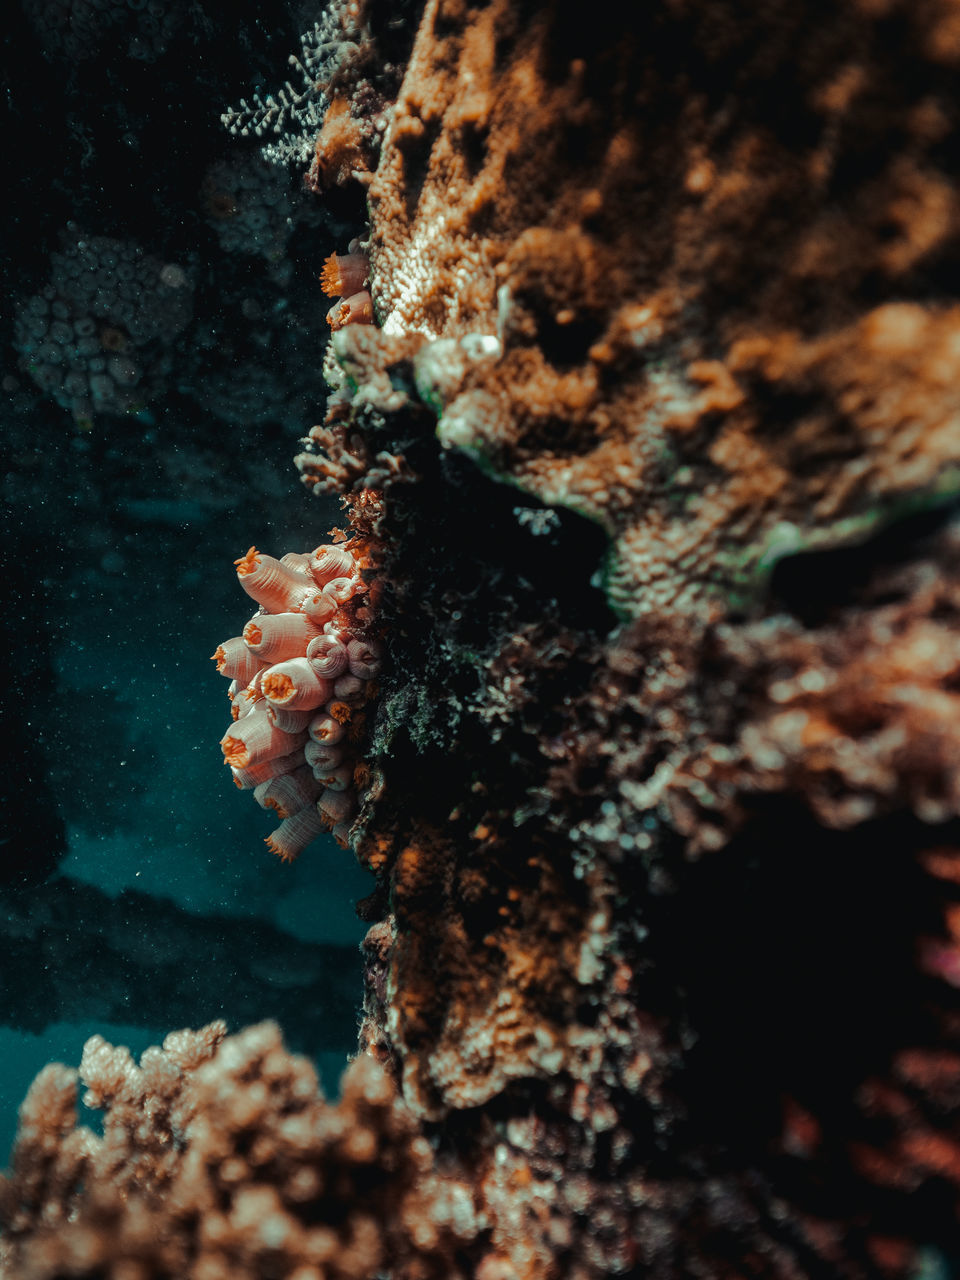 underwater, undersea, sea life, animals in the wild, sea, marine, coral, animal wildlife, invertebrate, animal themes, close-up, water, animal, no people, nature, one animal, outdoors, fish, beauty in nature, ecosystem